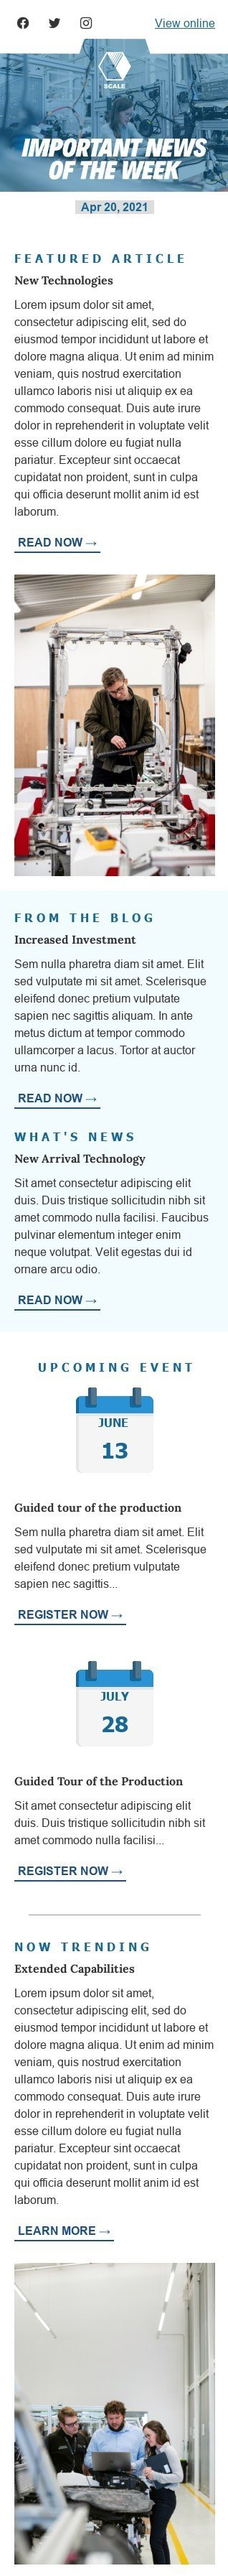 Promo Email Template «News of the week» for Manufacturing industry mobile view